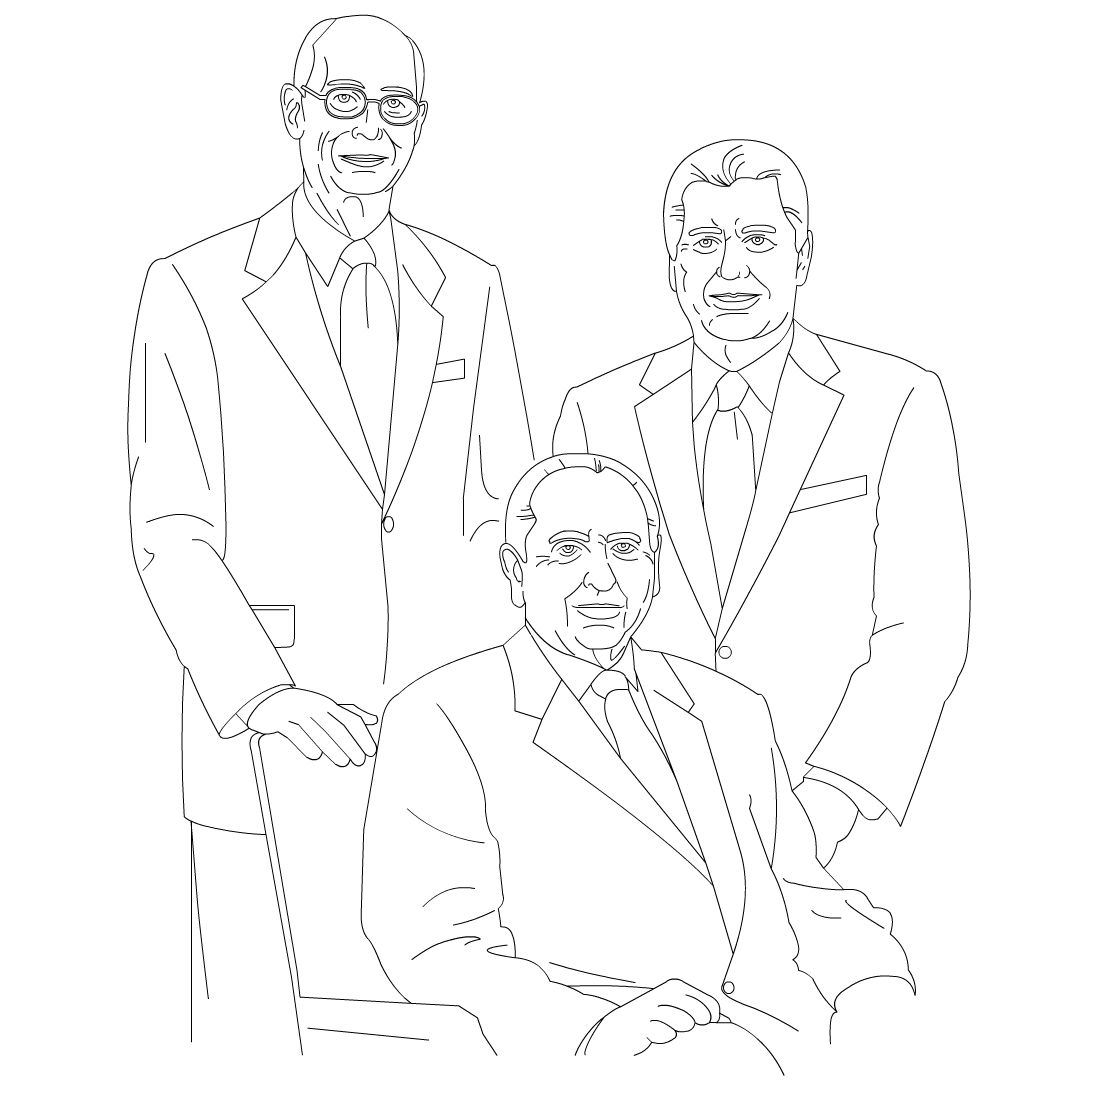 1100x1100 Free Lds Clipart To Color For Primary Children First Presidency